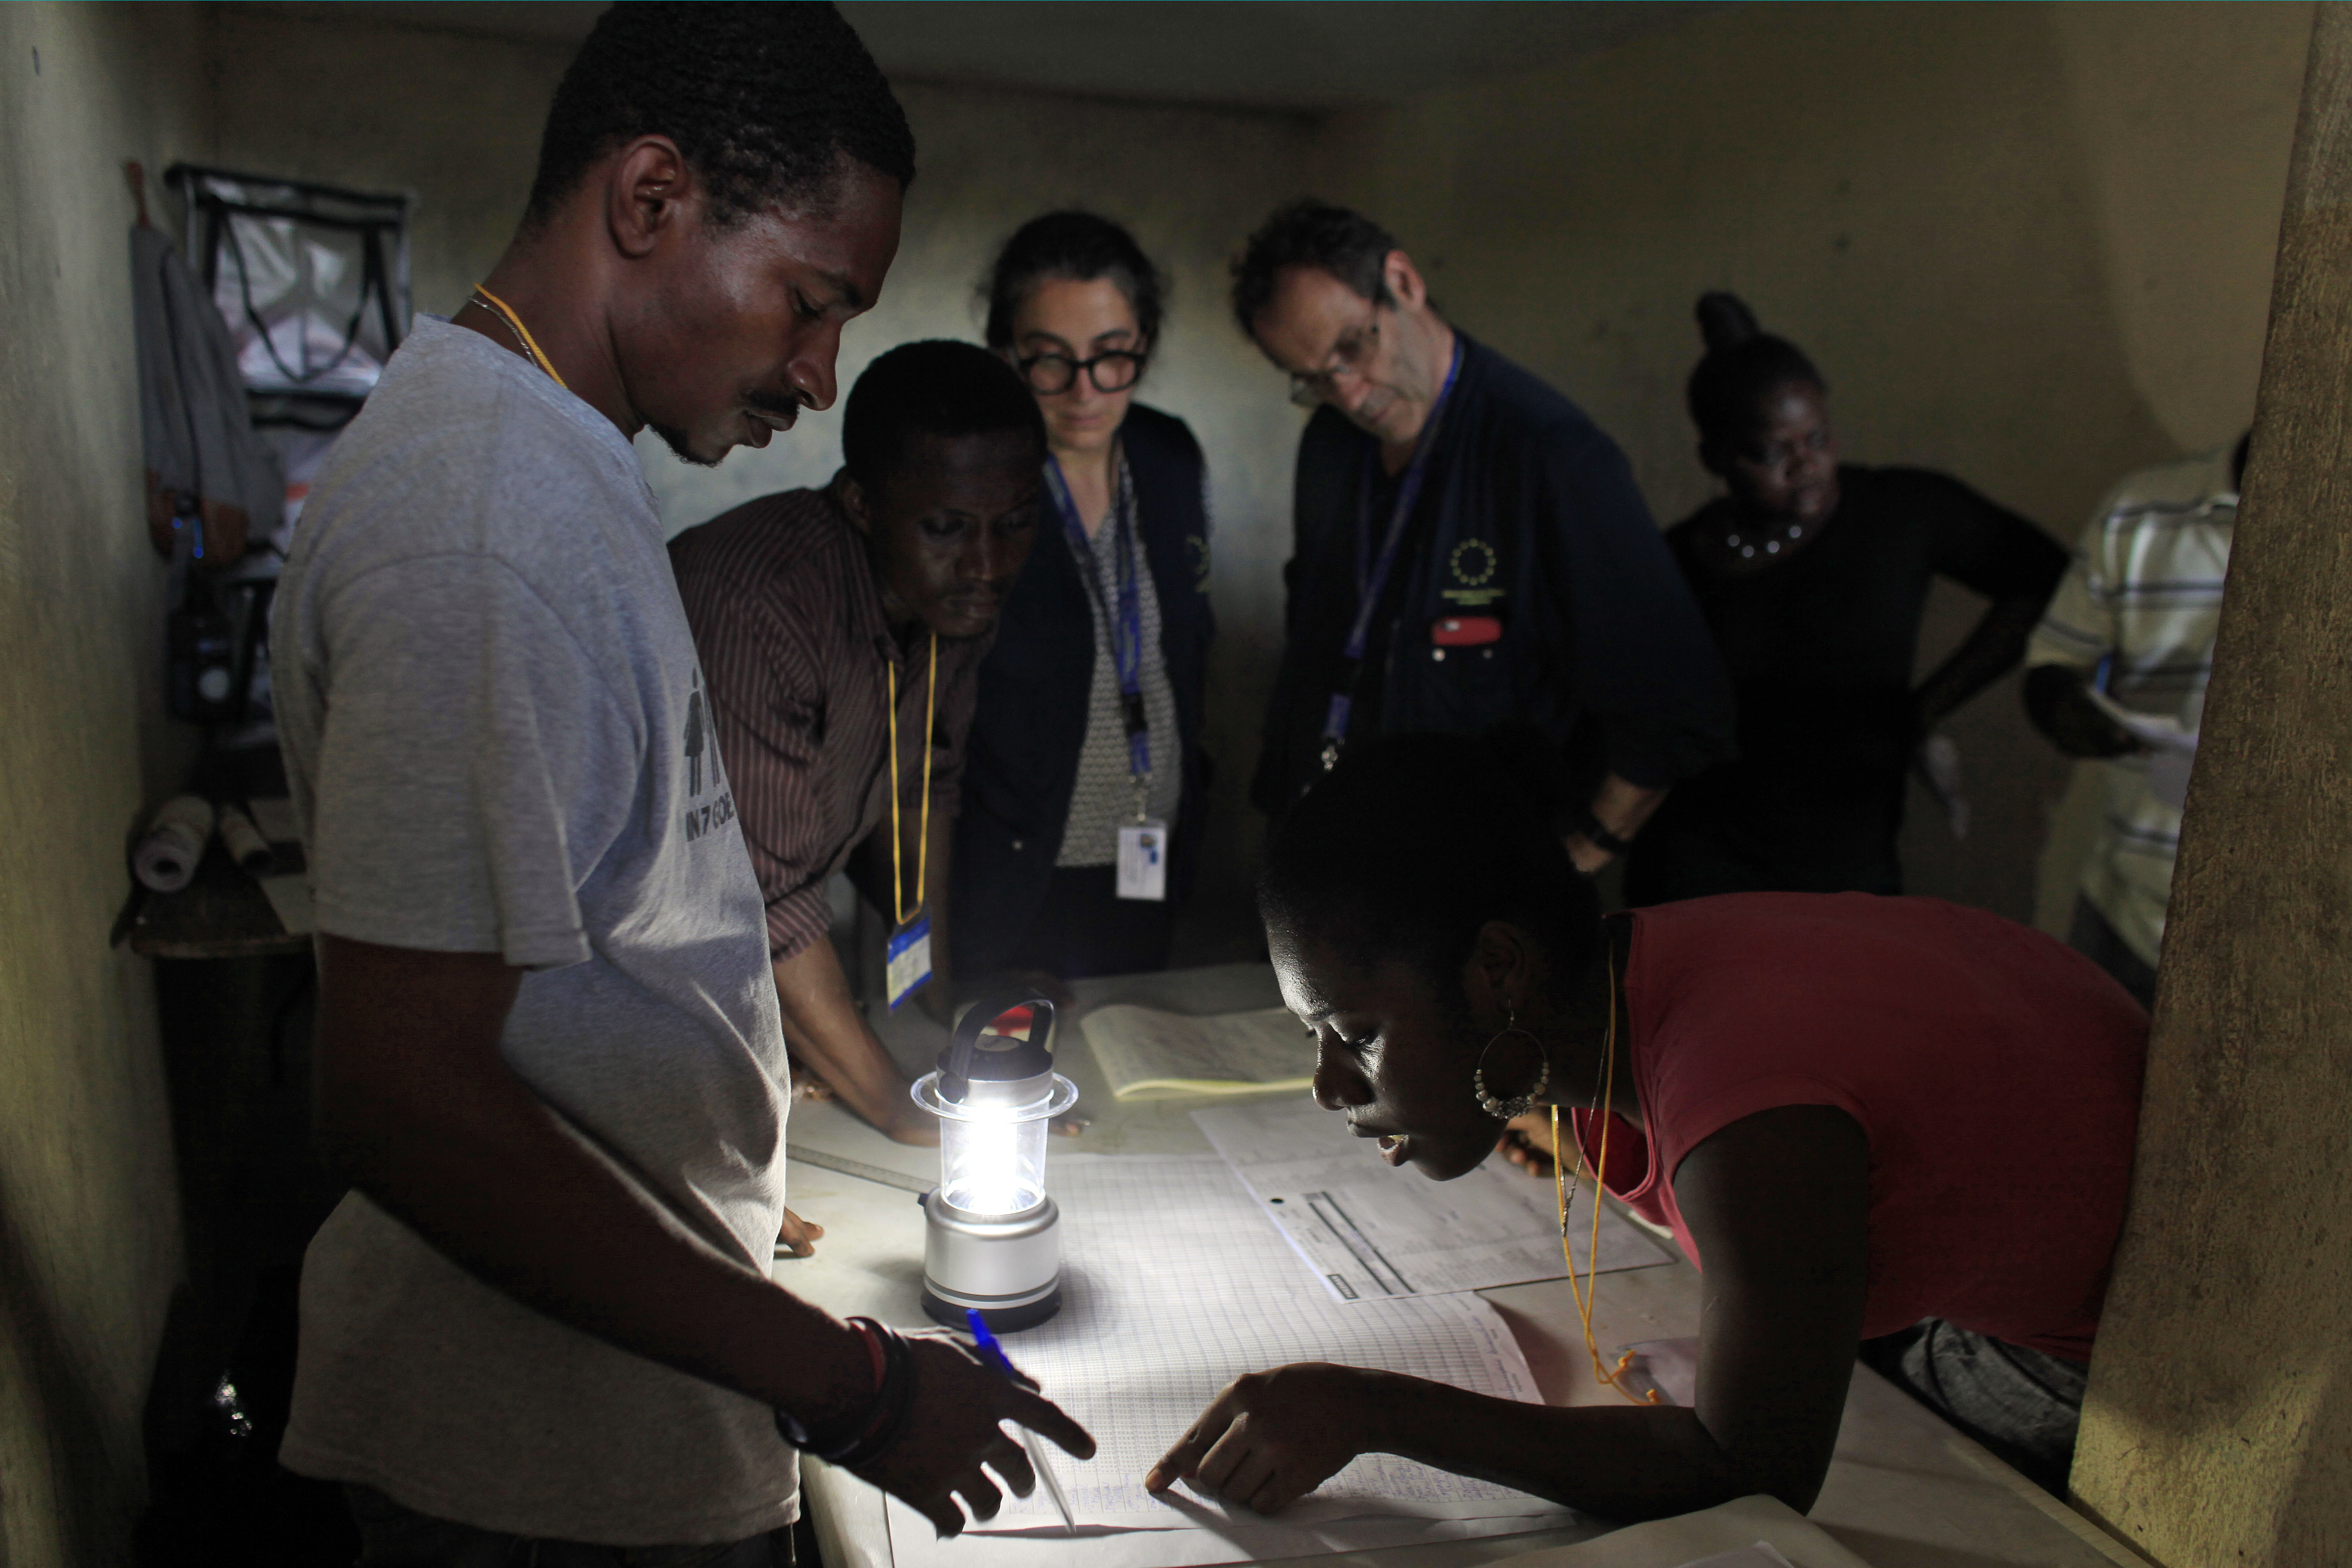 Members of the European Union Election Observation Mission, behind, observe electoral workers count ballots at a polling station at the end of the national elections in Port-au-Prince, Haiti, Oct. 25, 2015.